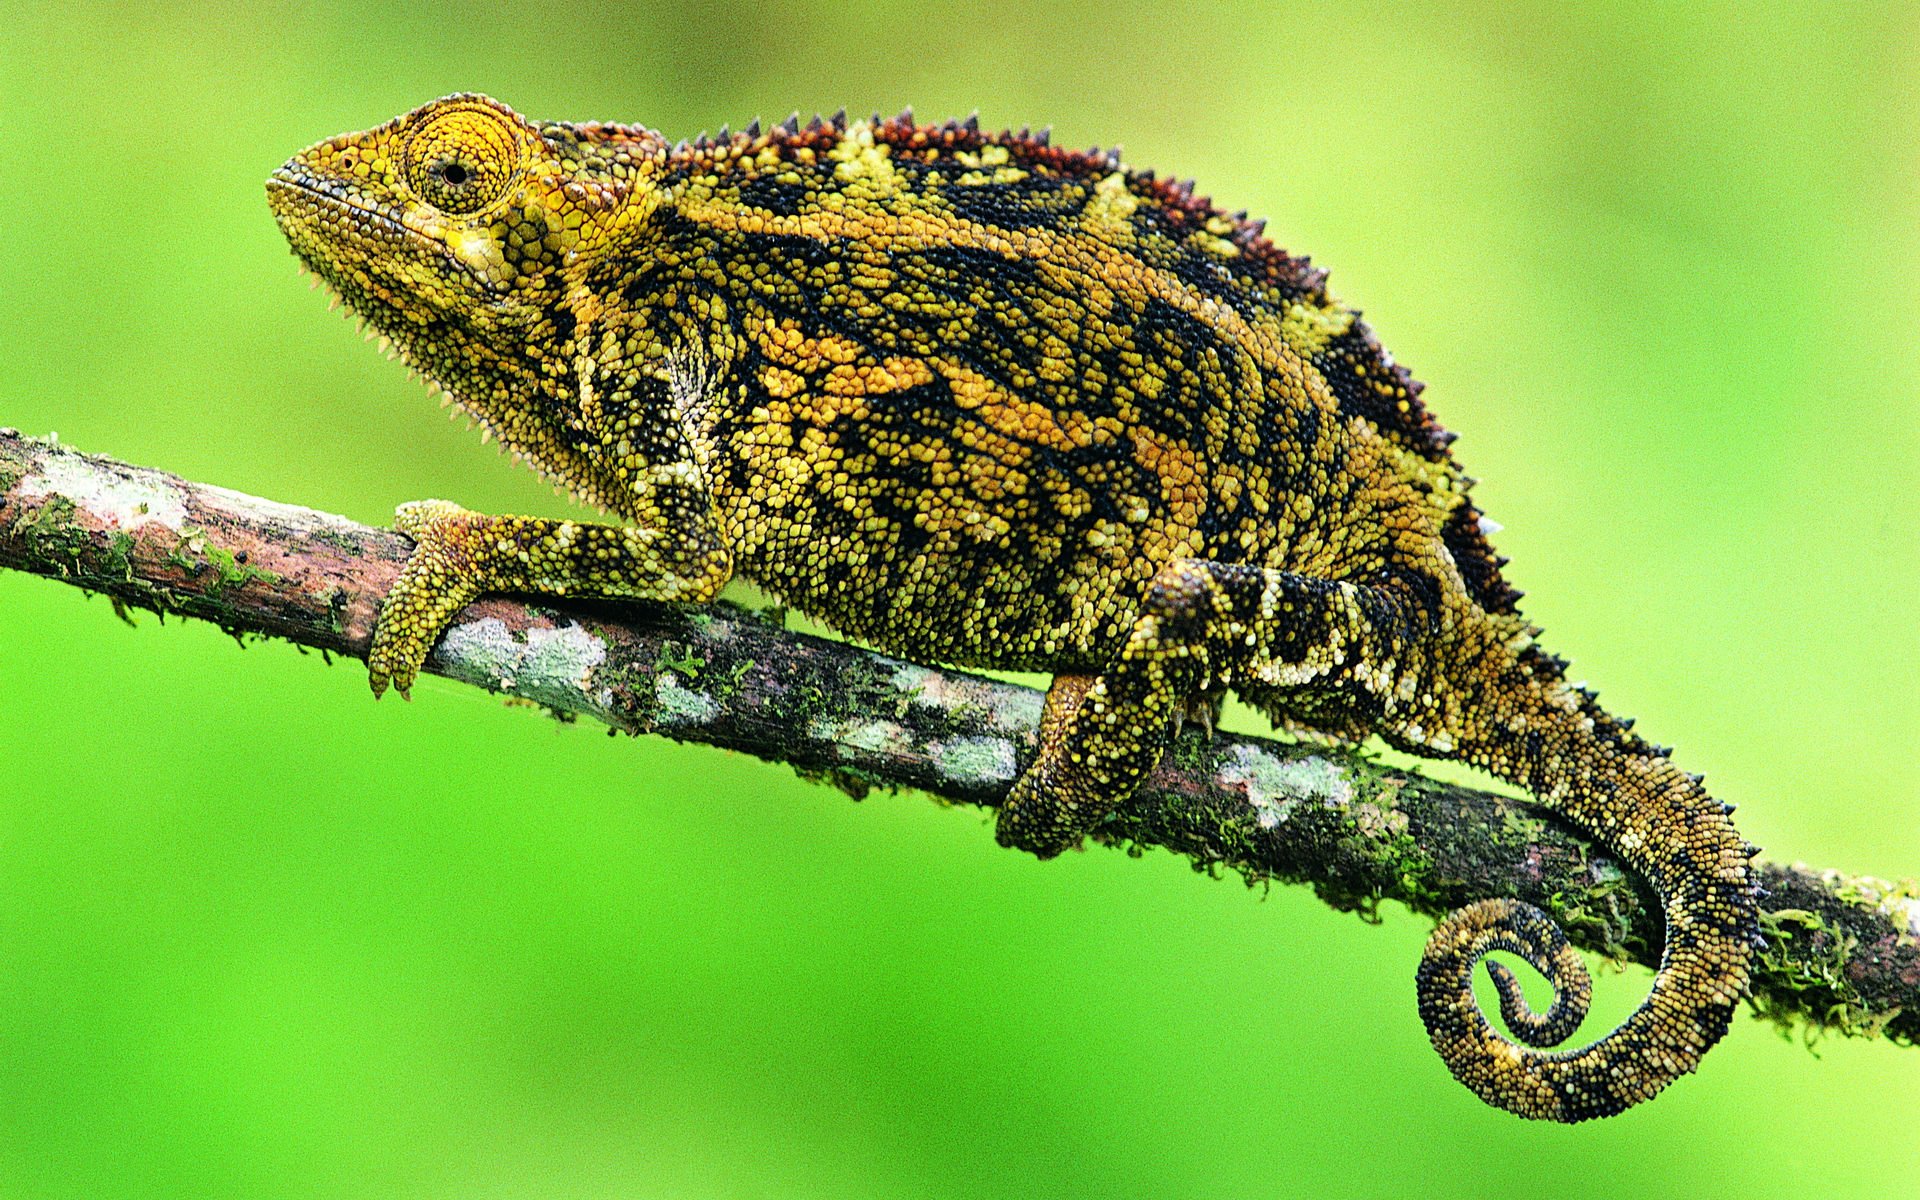 chameleon wallpaper 1920x1200 - photo #26